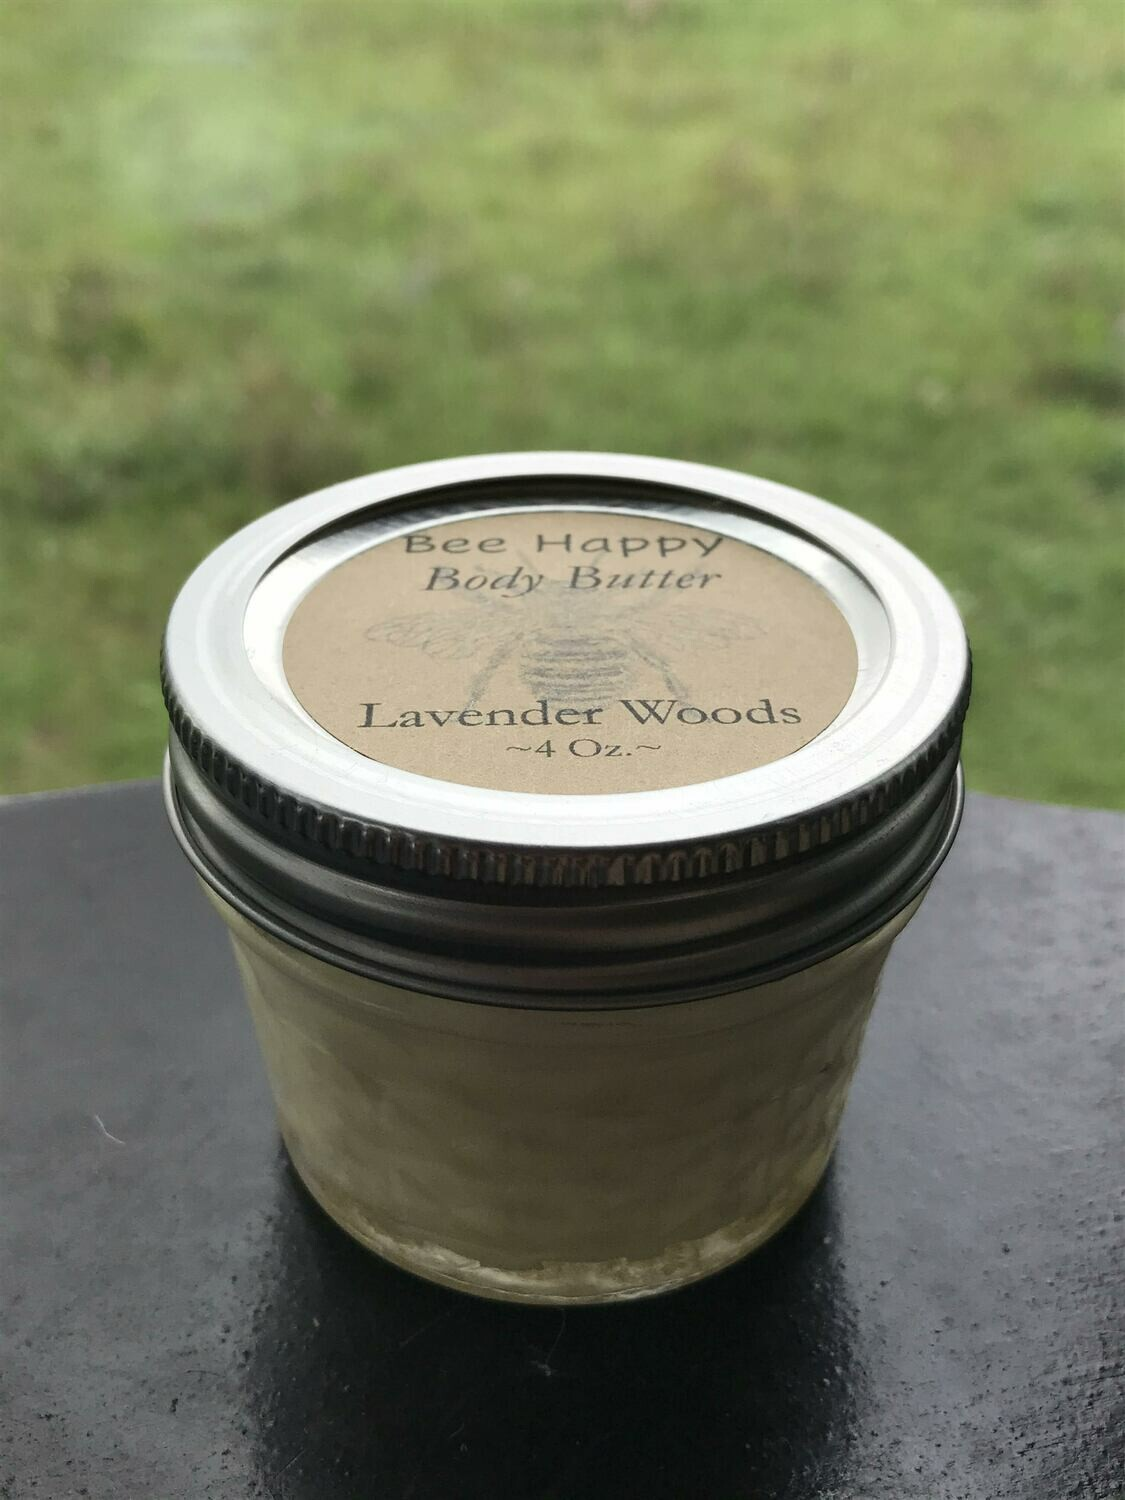 Lavender Woods Body Butter